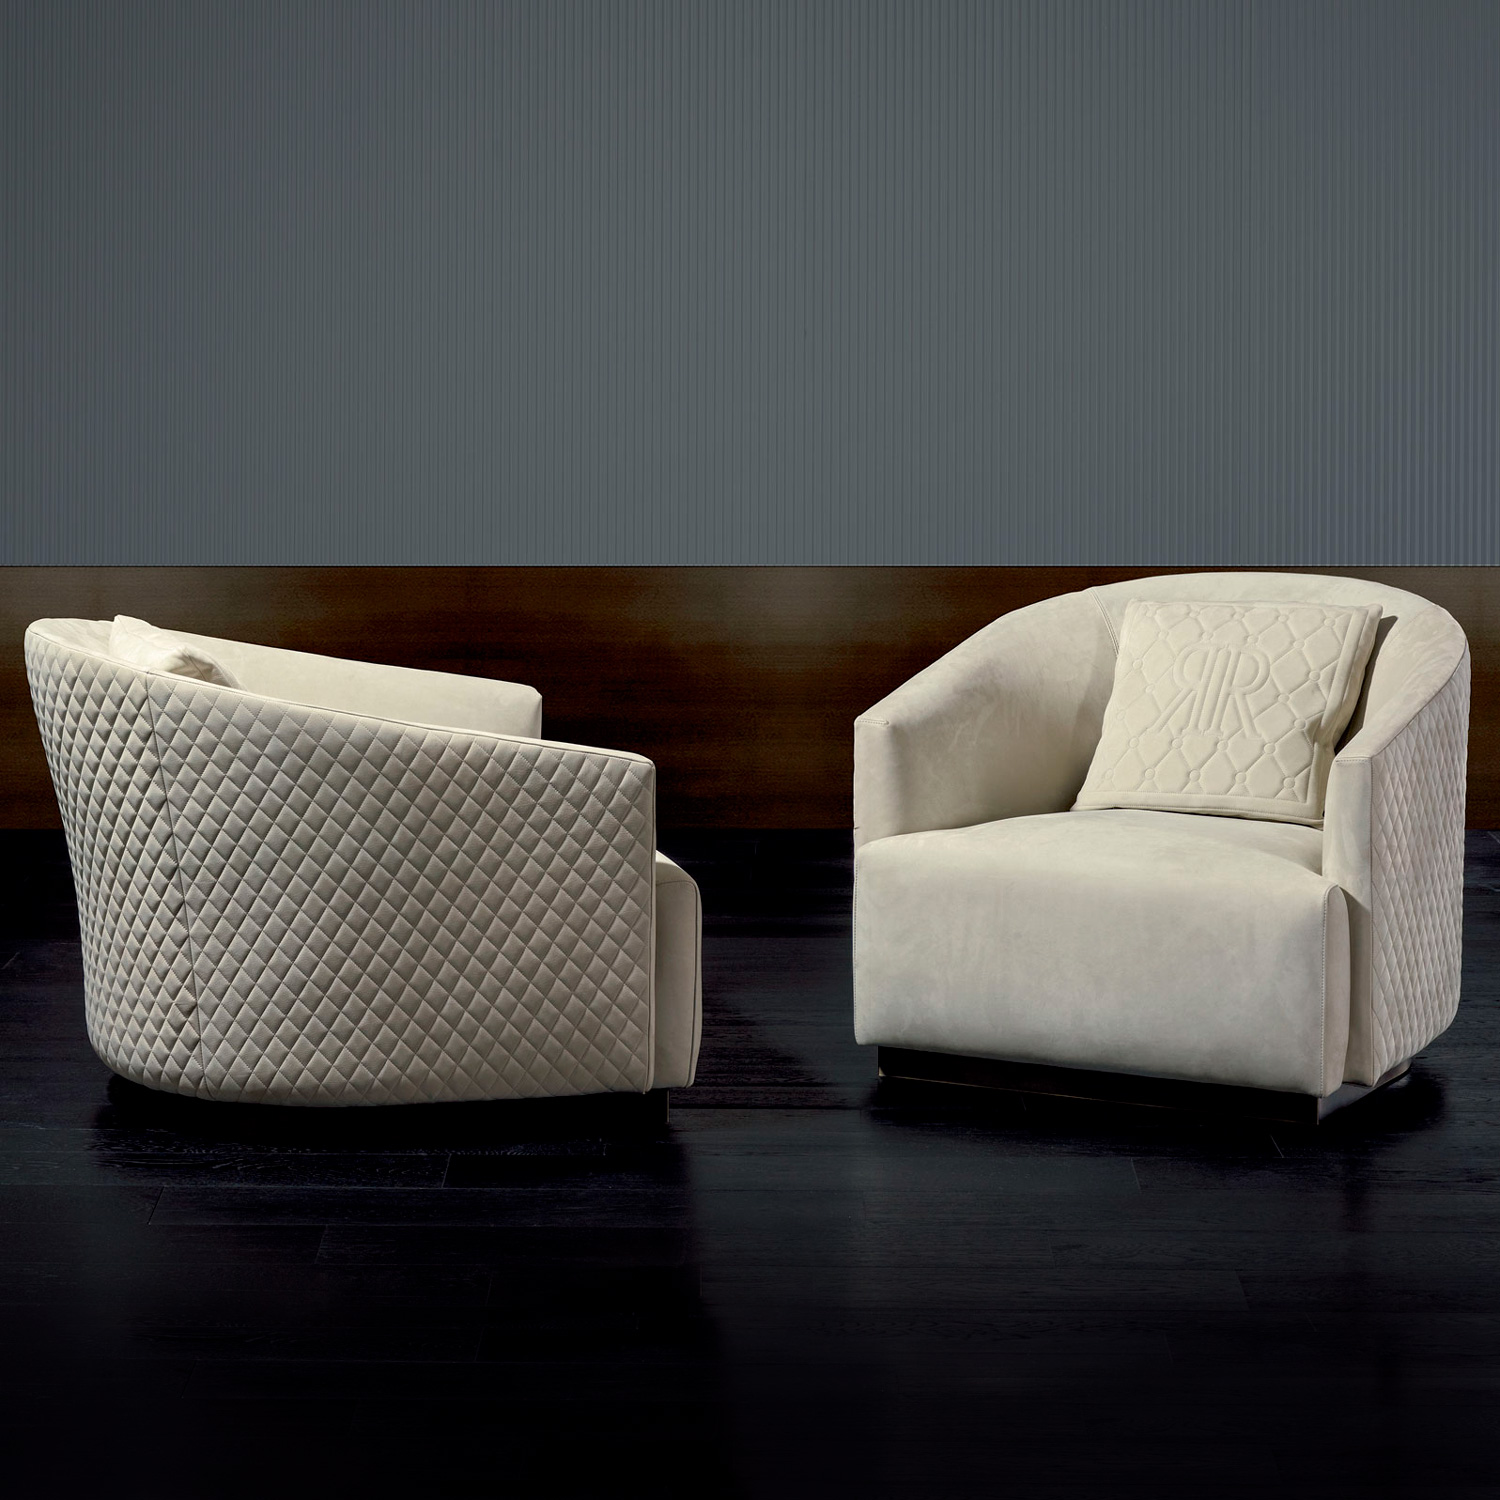 Luxury Italian Designer Opera Lounge Chair Italian